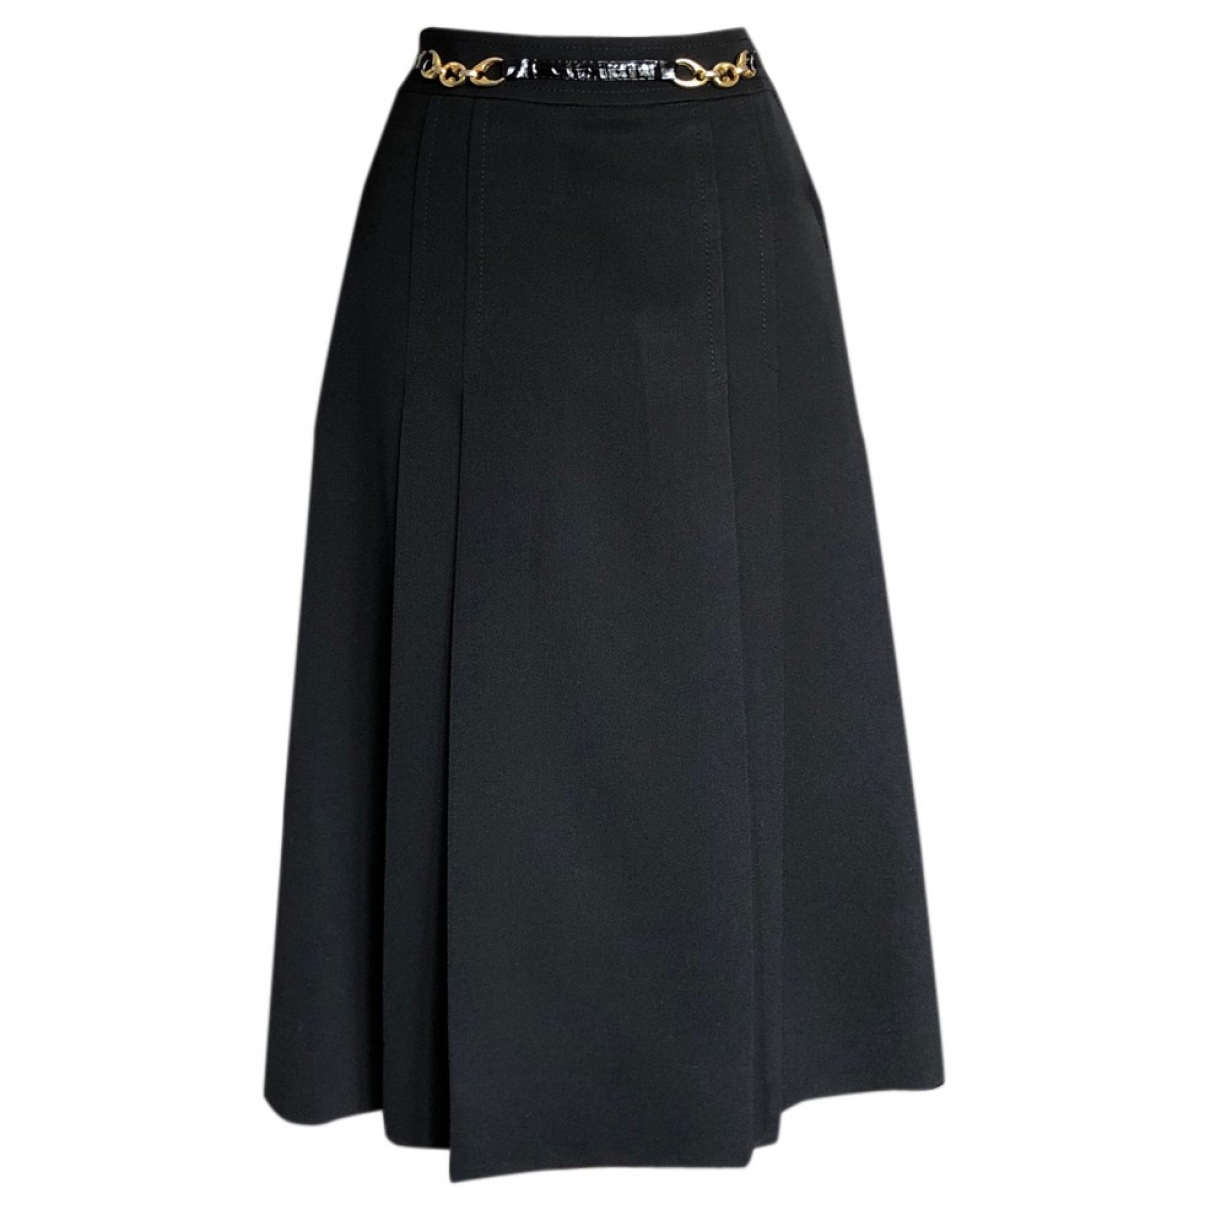 Celine \N Black Wool skirt for Women 38 FR